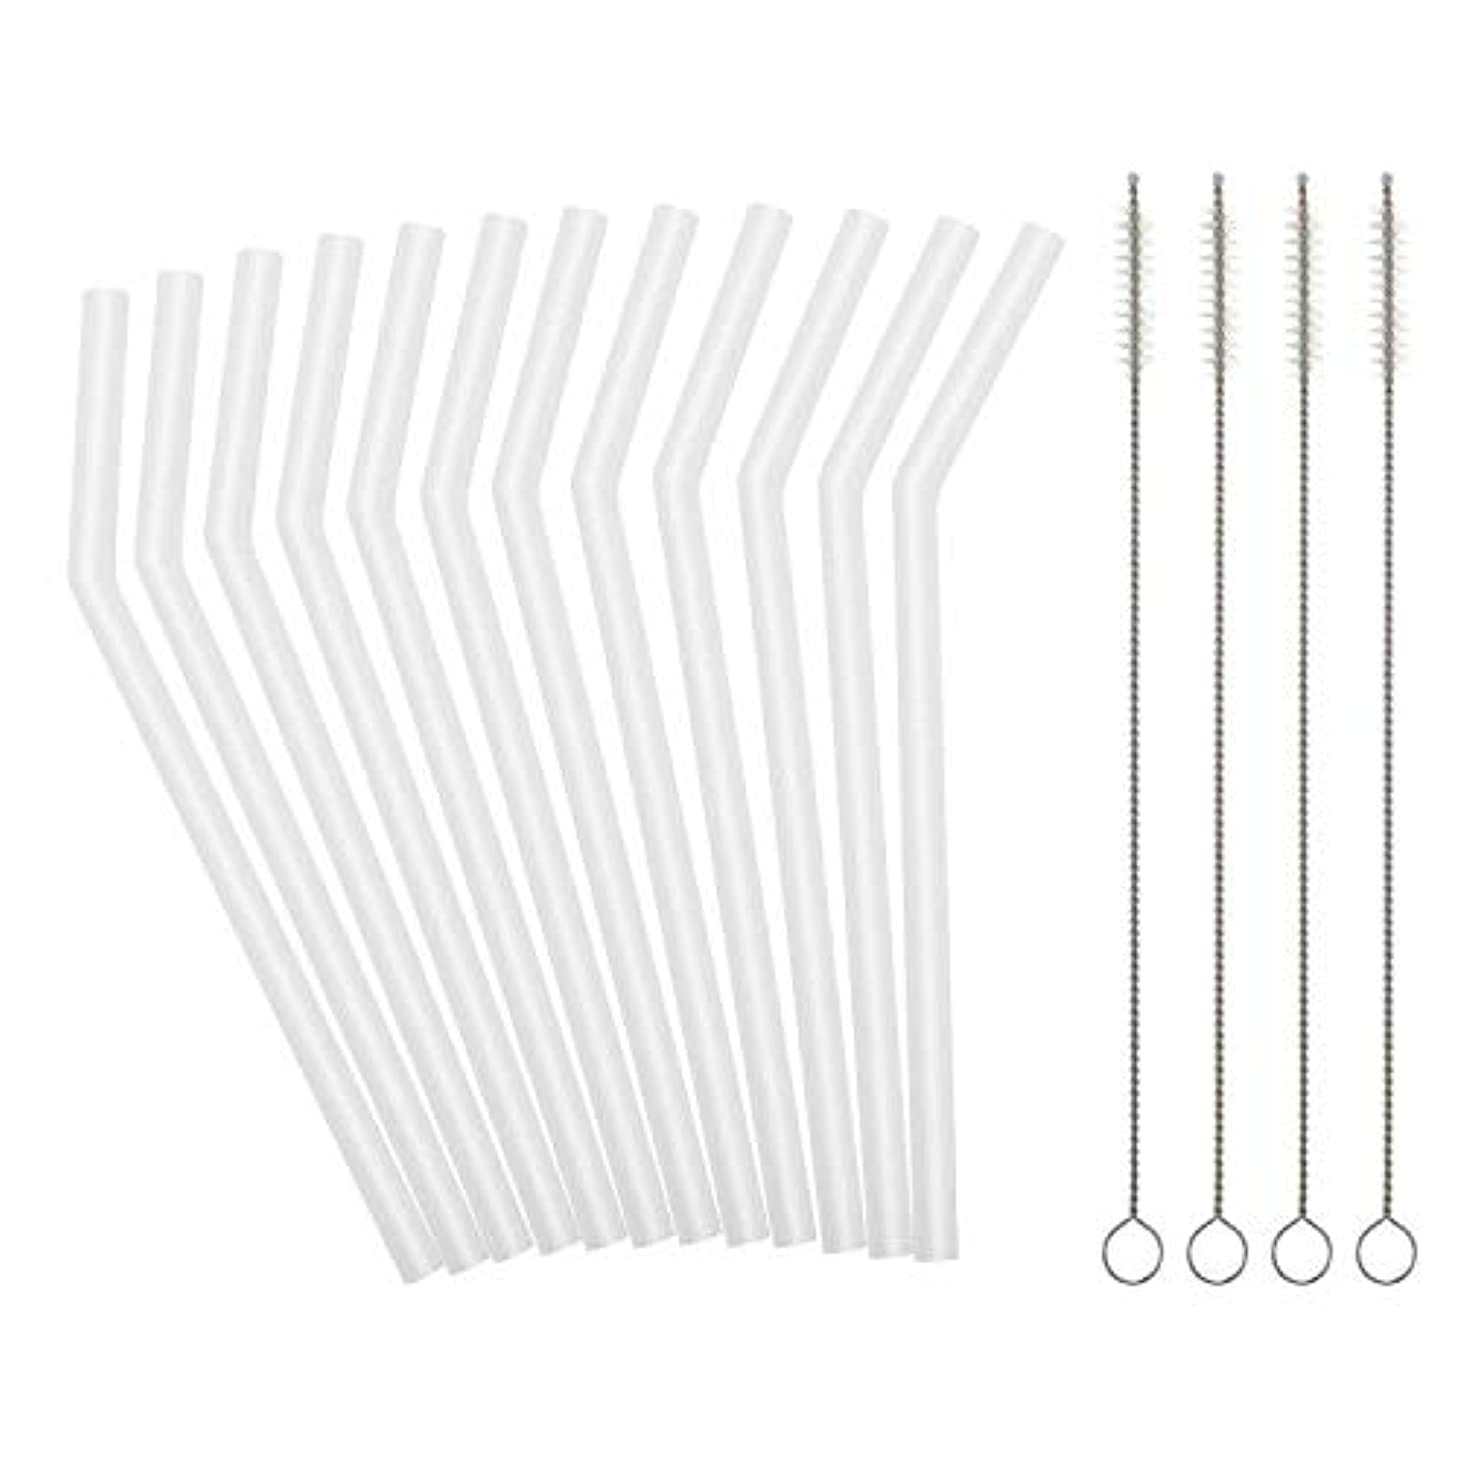 Reusable Clear Silicone Straws for Toddlers & Kids - 12 pcs Flexible Short Drink 6.7